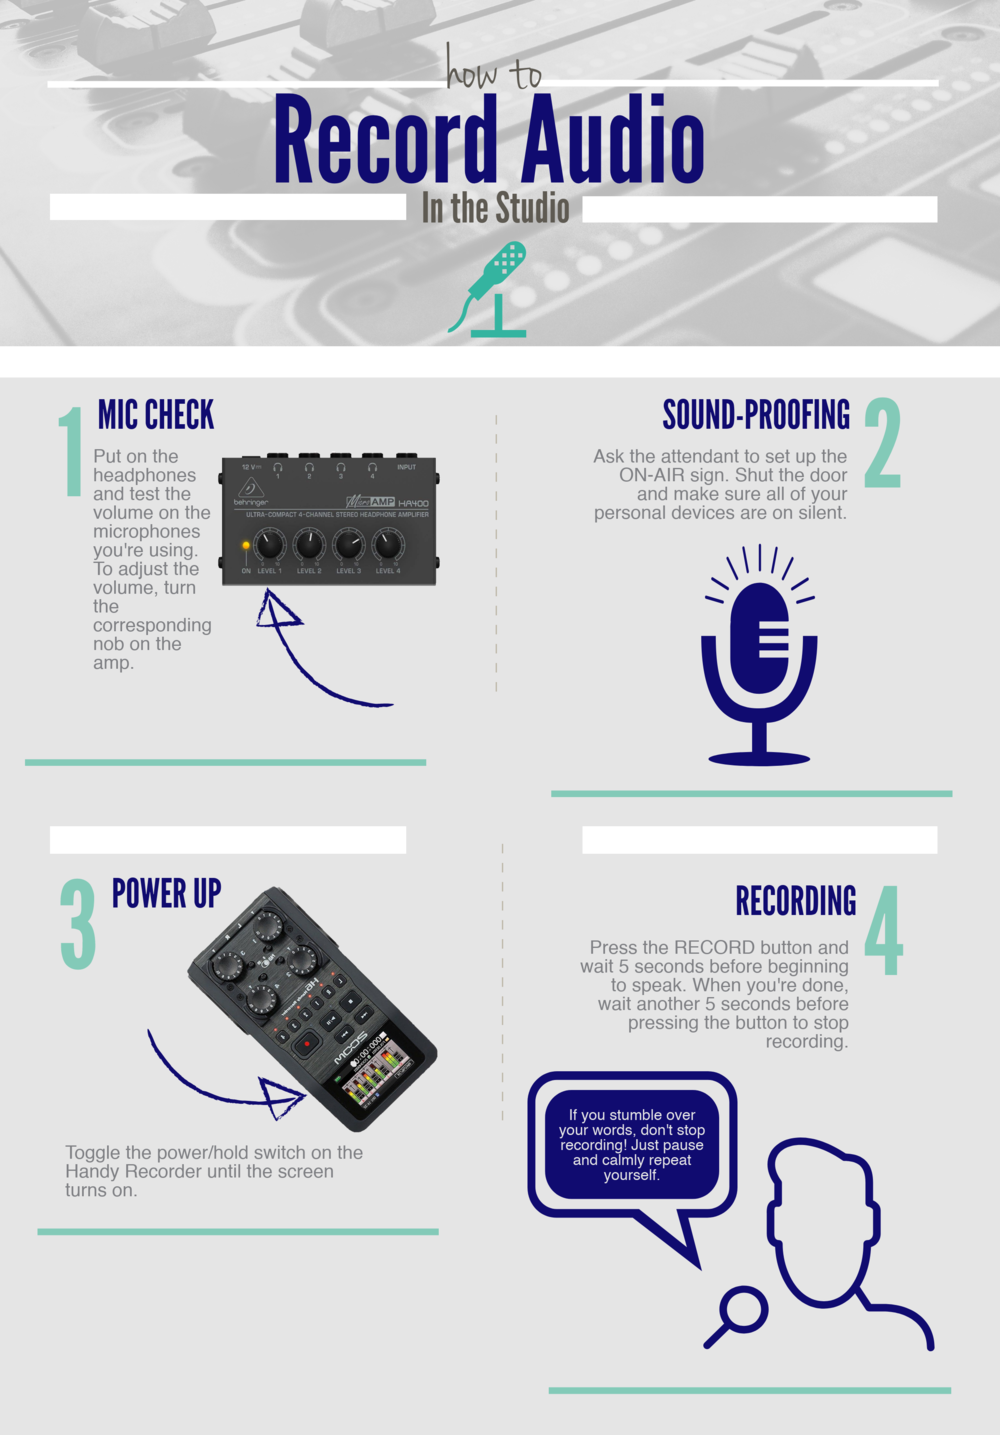 Part 1 of our guide to recording in the sound booth in DPH 216.